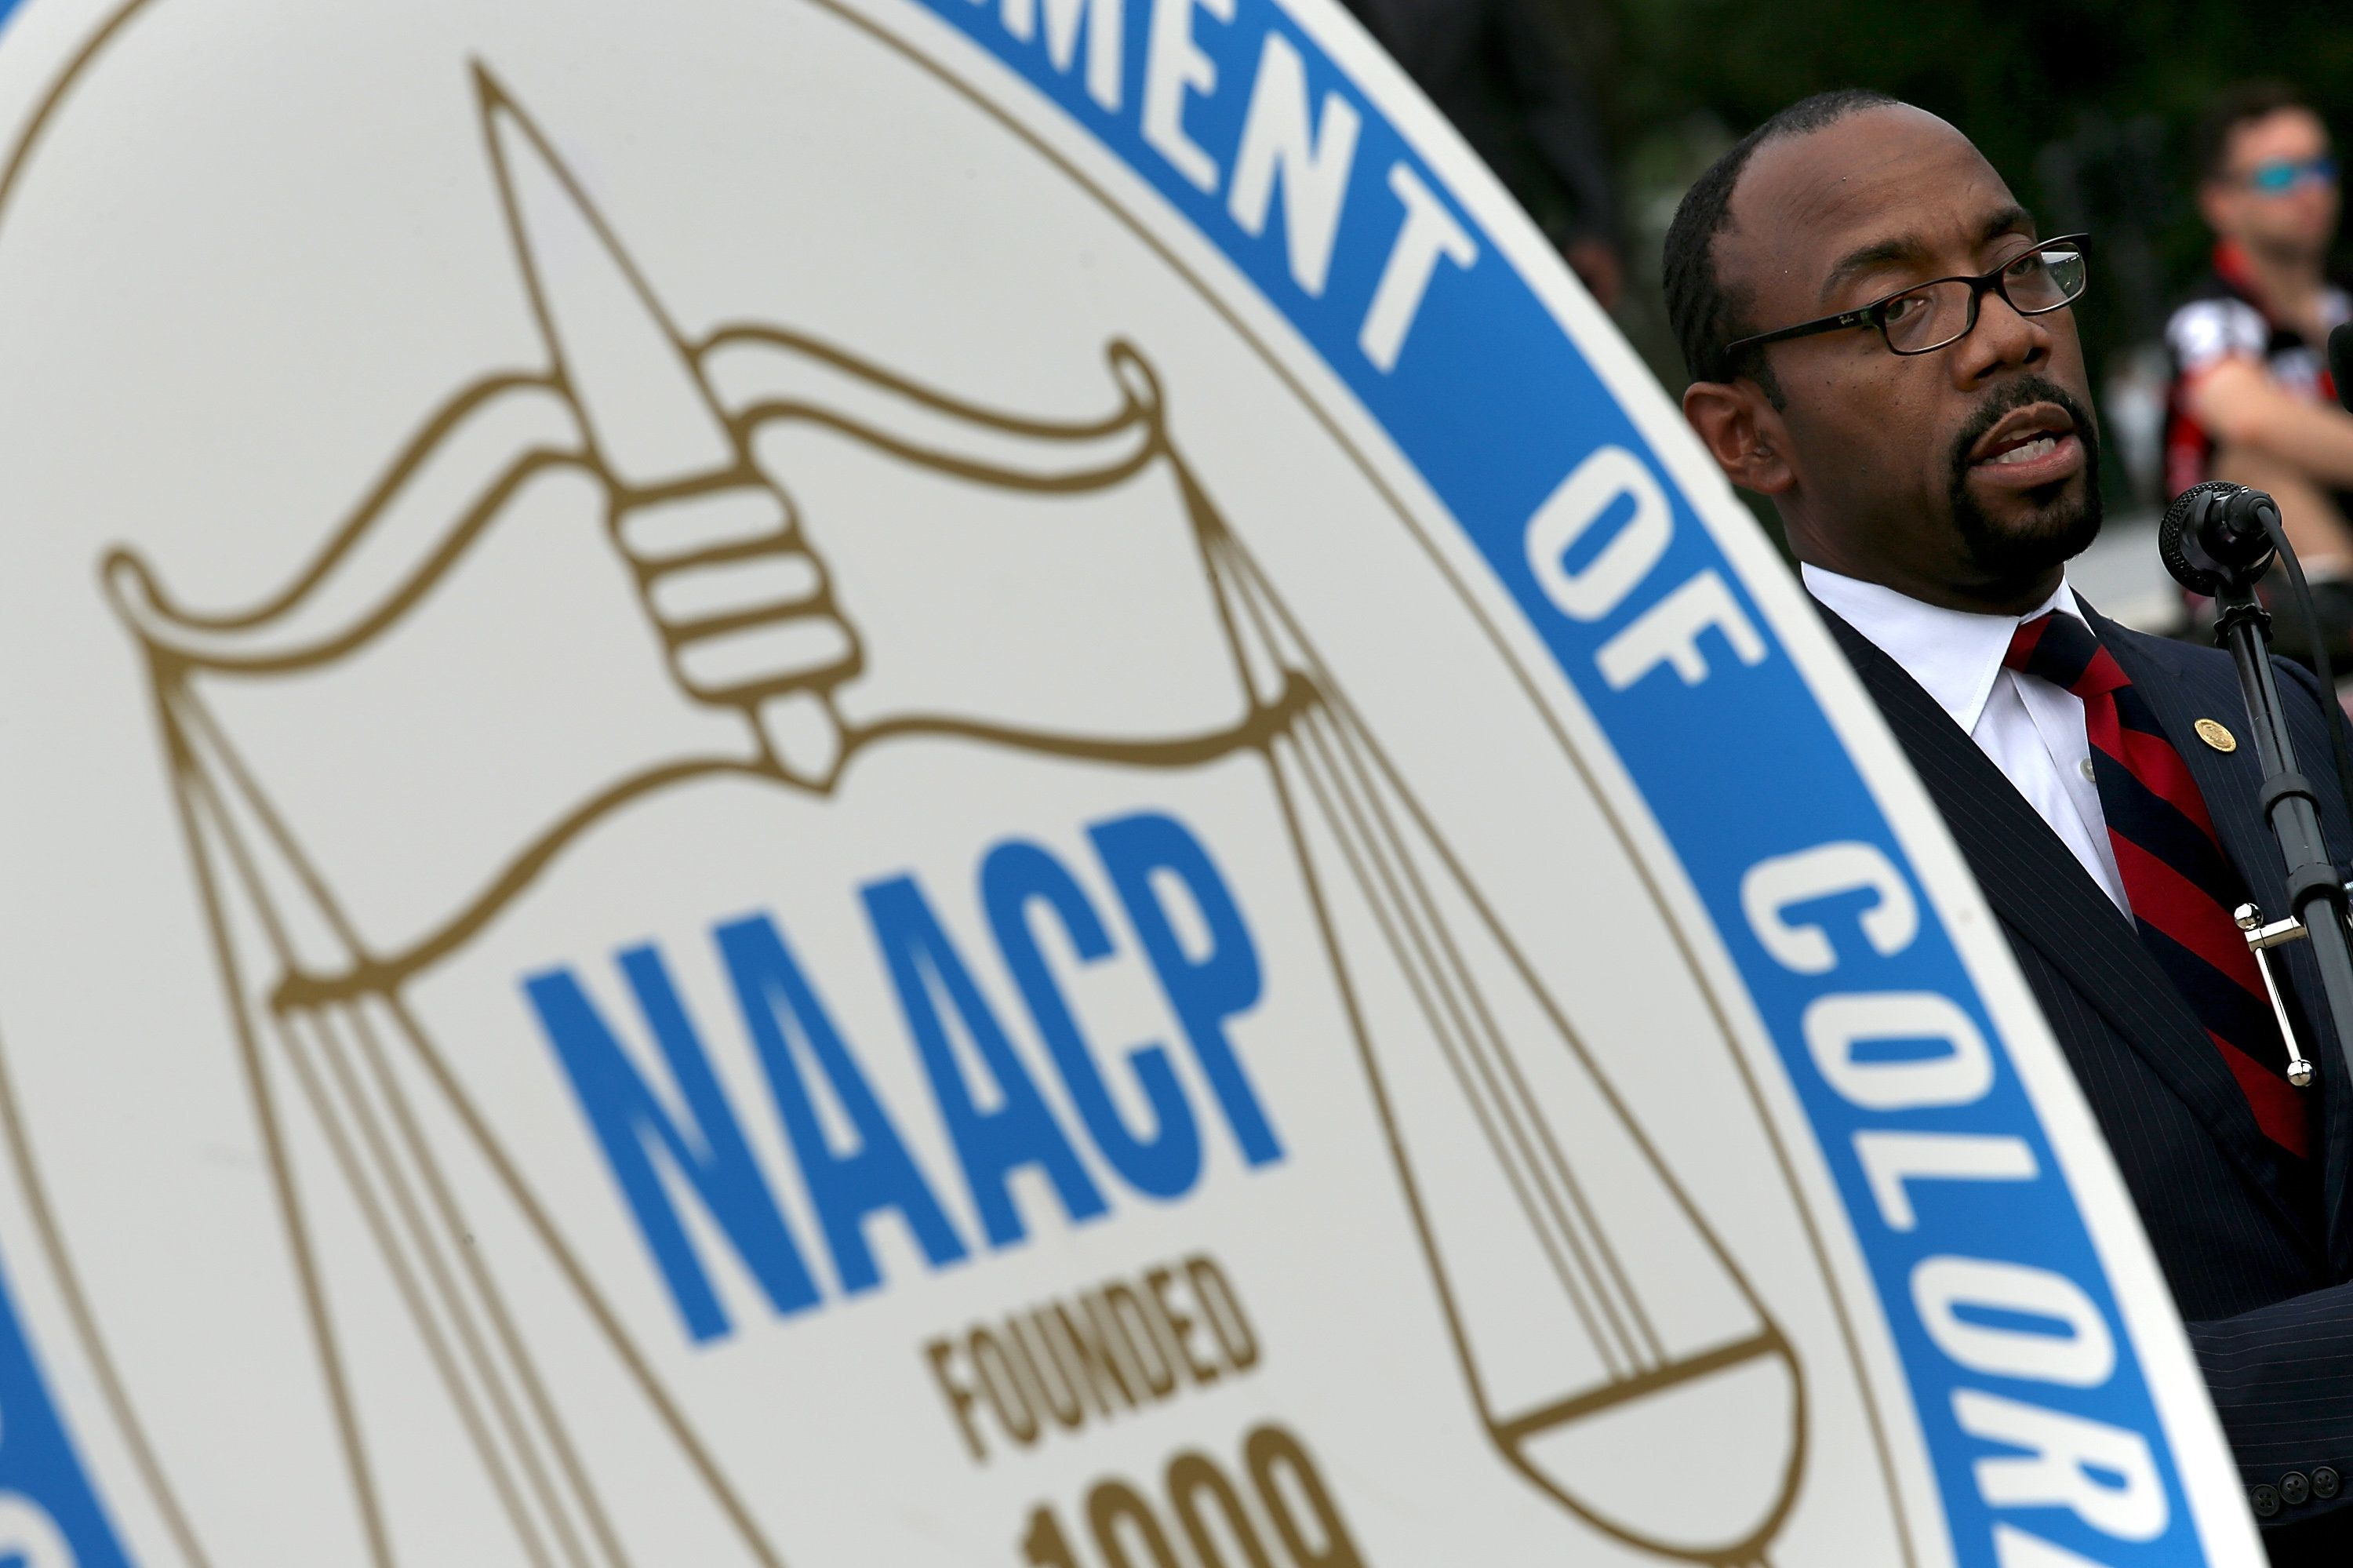 WASHINGTON, DC - JUNE 15: NAACP President and CEO Cornell William Brooks speaks during a press conference at the Lincoln Memorial June 15, 2015 in Washington, DC. Brooks announced 'America's Journey for Justice,' an 860-mile march from Selma, Alabama to Washington, D.C. and a campaign 'to protect the right of every American to a fair criminal justice system, uncorrupted and unfettered access to the ballot box, sustainable jobs with a living wage, and equitable public education.'   (Photo by Win McNamee/Getty Images)